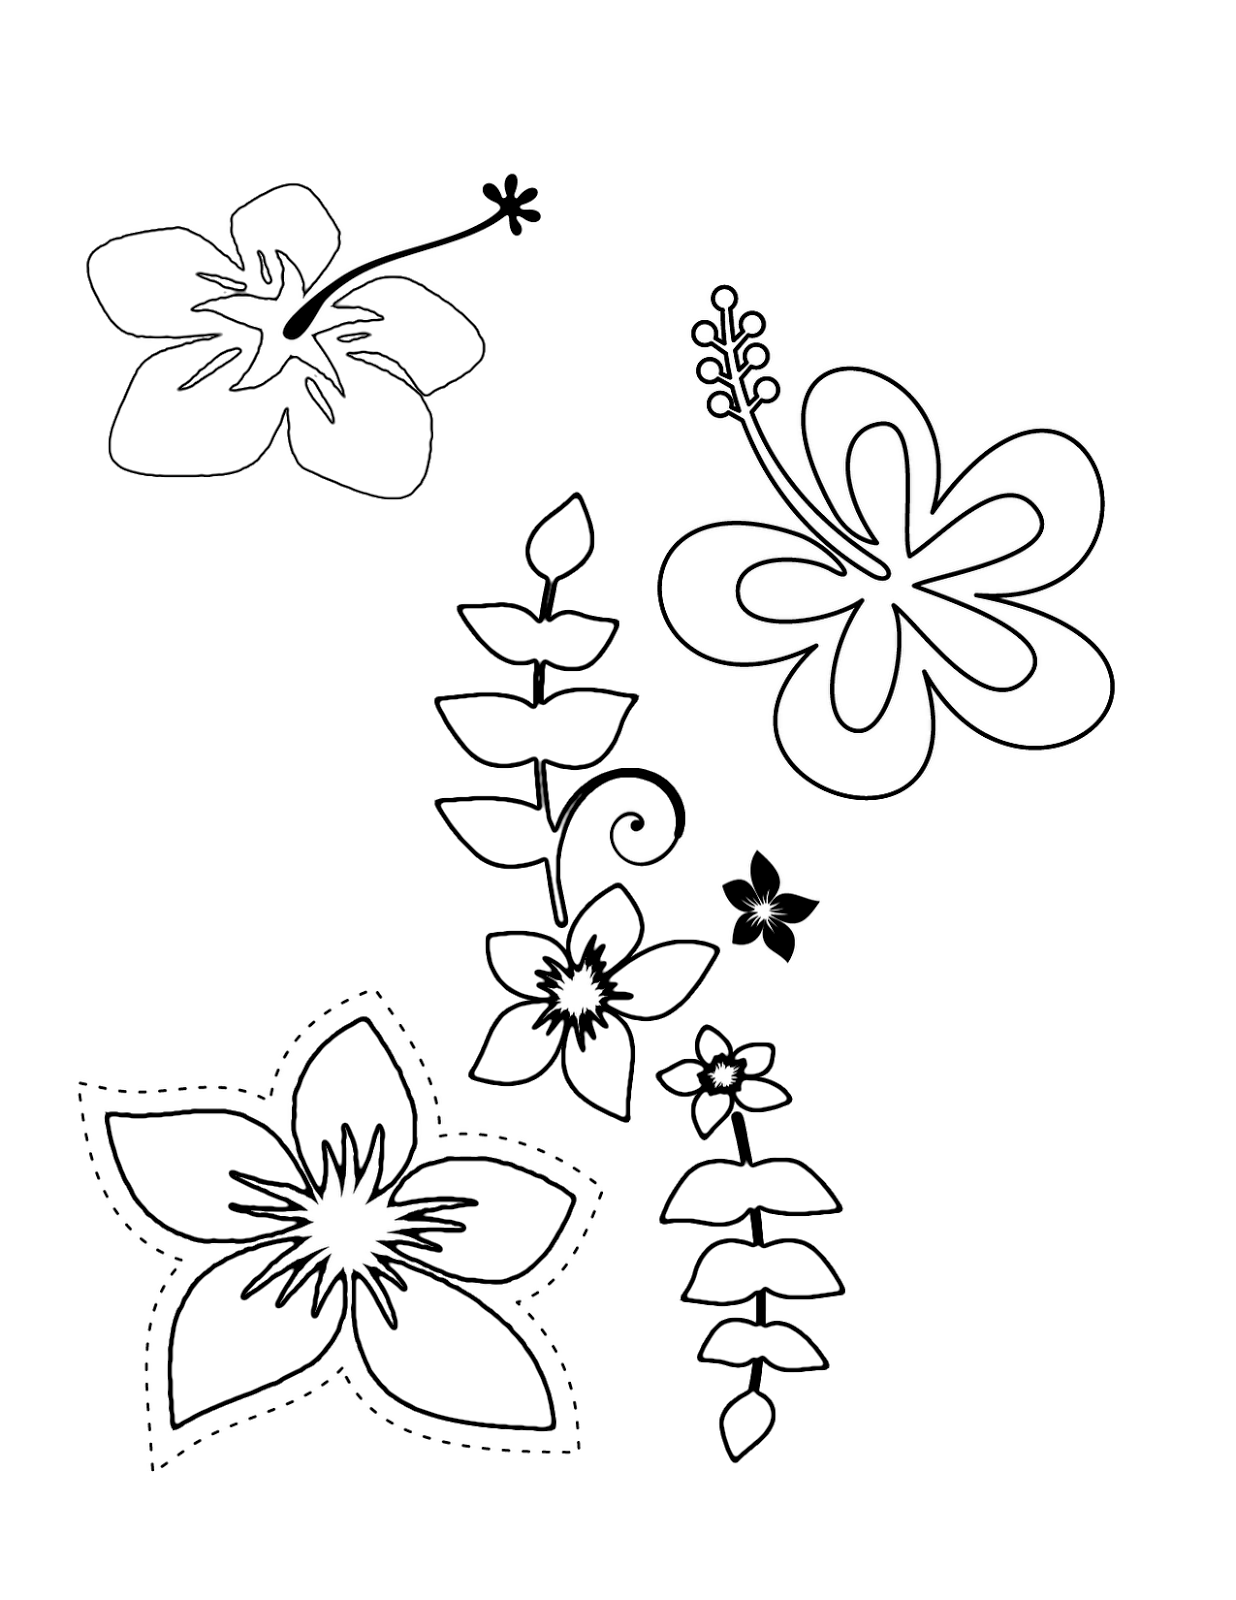 April 2013 - Flower Coloring Page